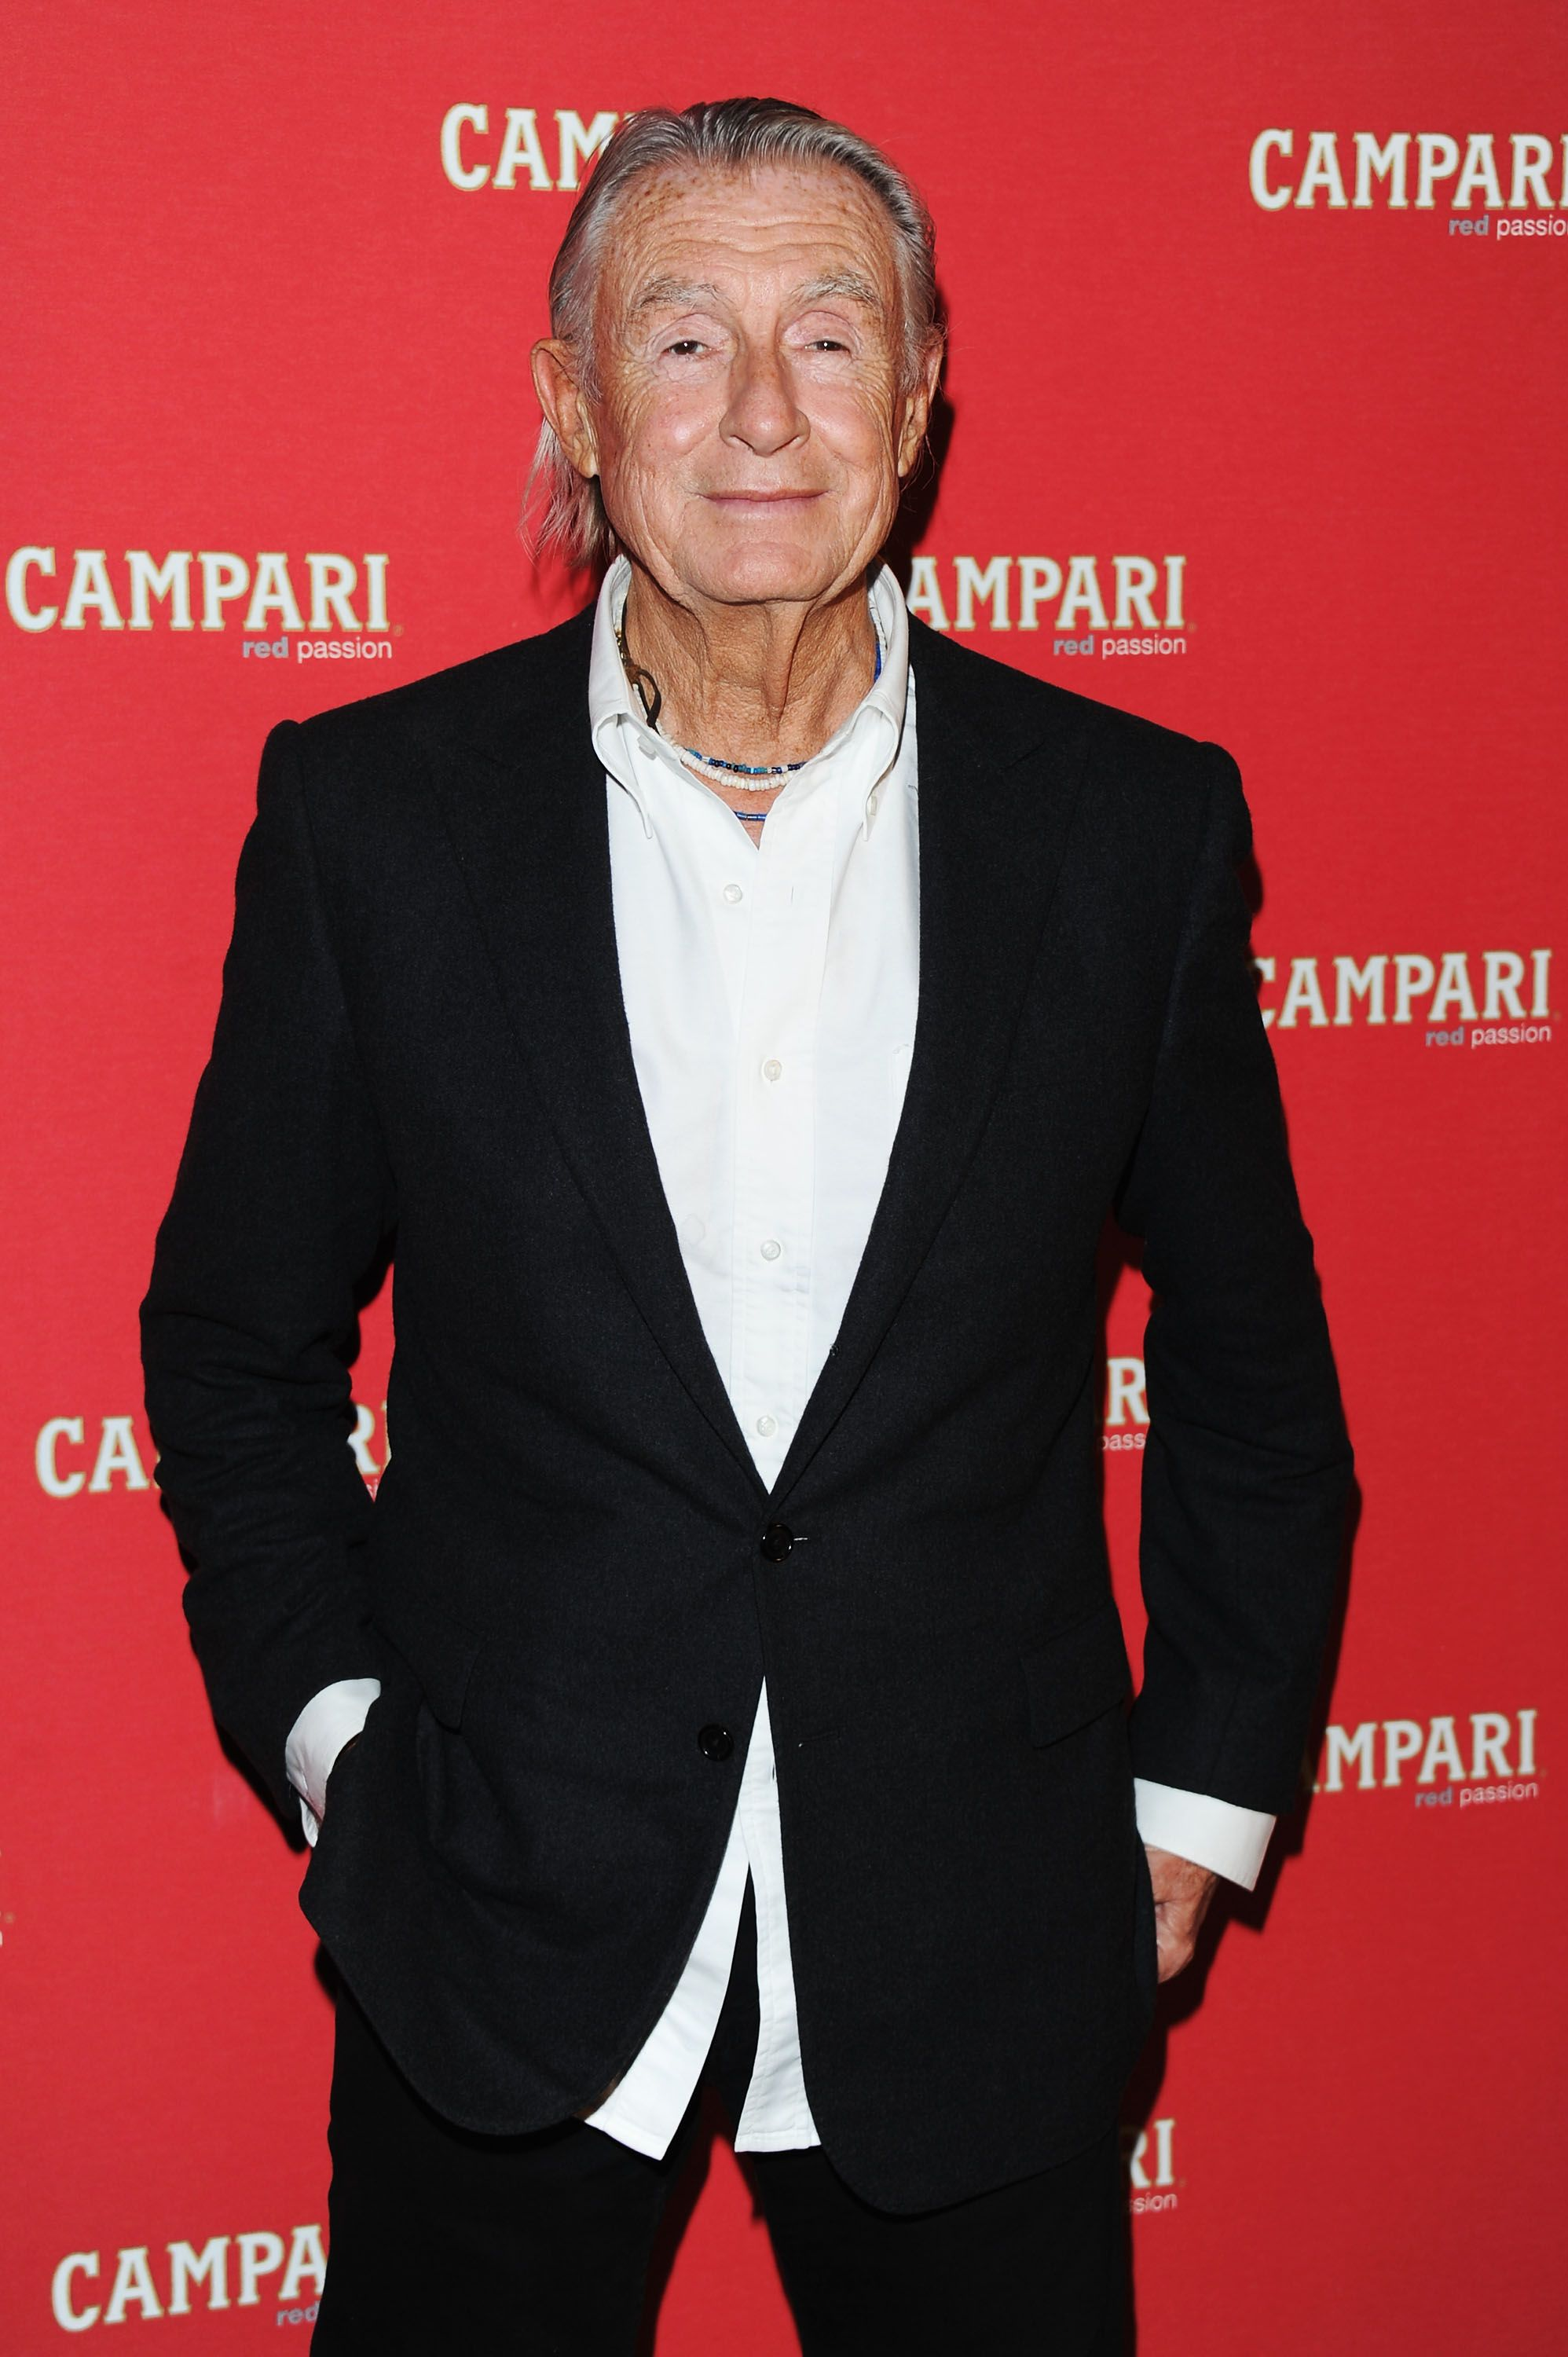 Joel Schumacher at a Campari event during the 6th International Rome Film Festival at Auditorium Parco Della Musica on November 3, 2011 in Rome, Italy | Photo: Getty Images